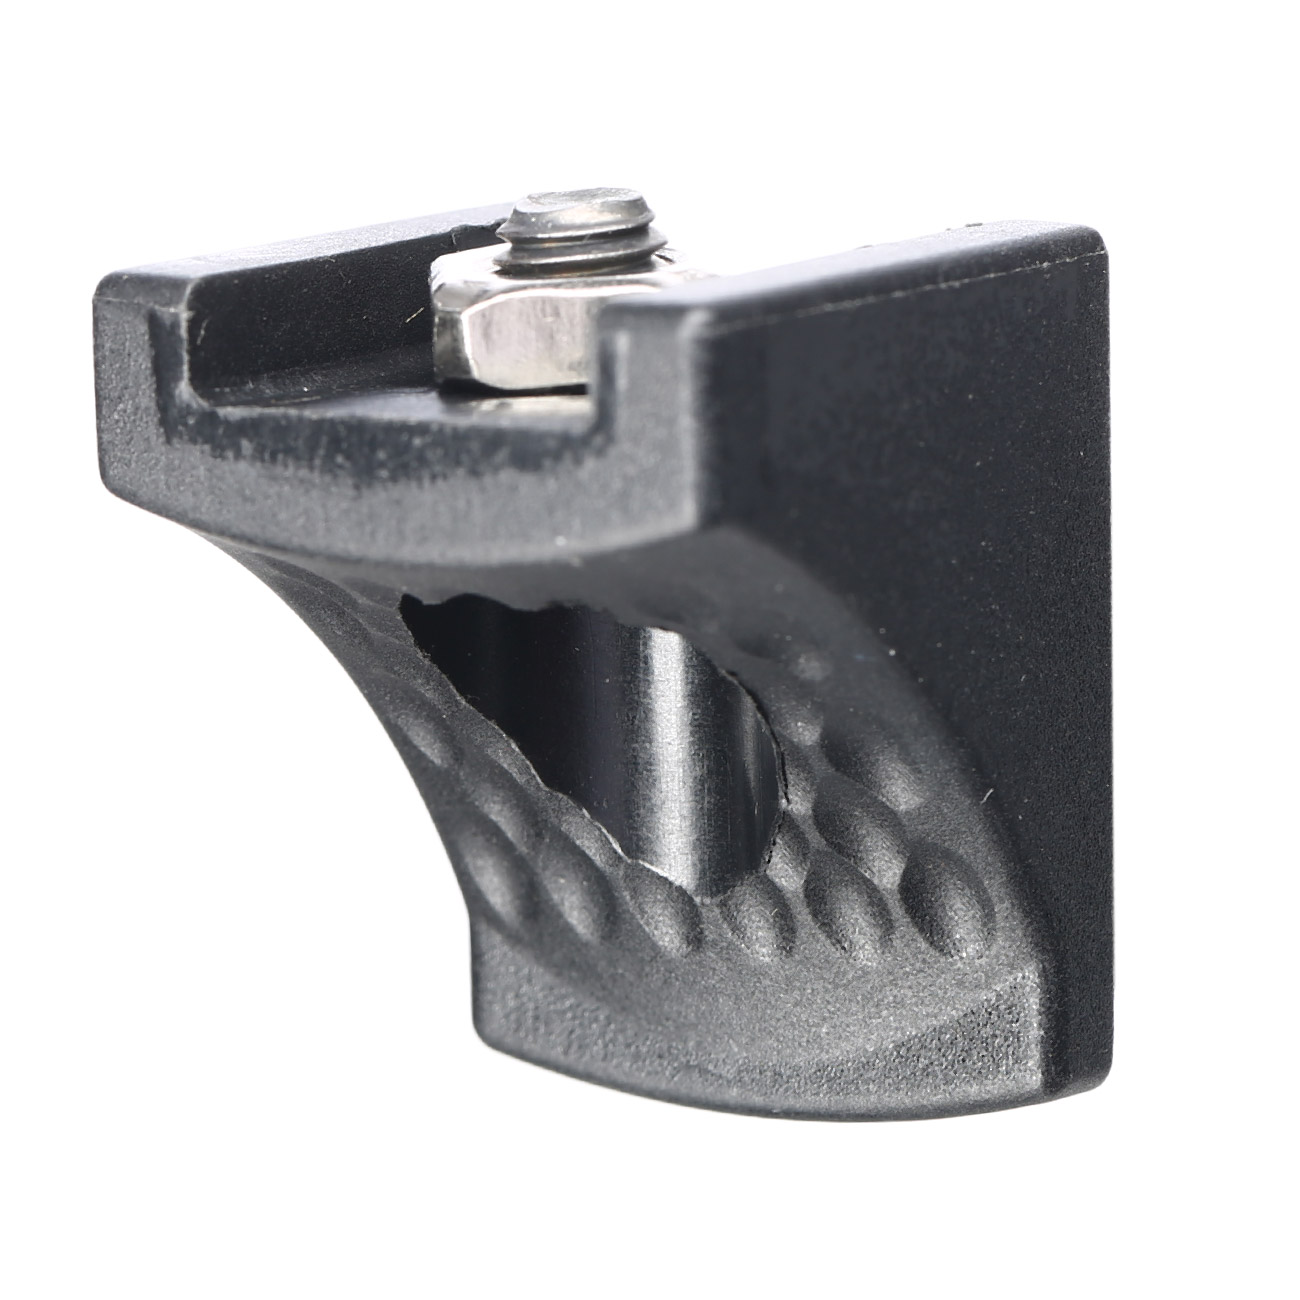 Dytac URX3 Single-Hole Polymer-Handstop 24mm schwarz 1